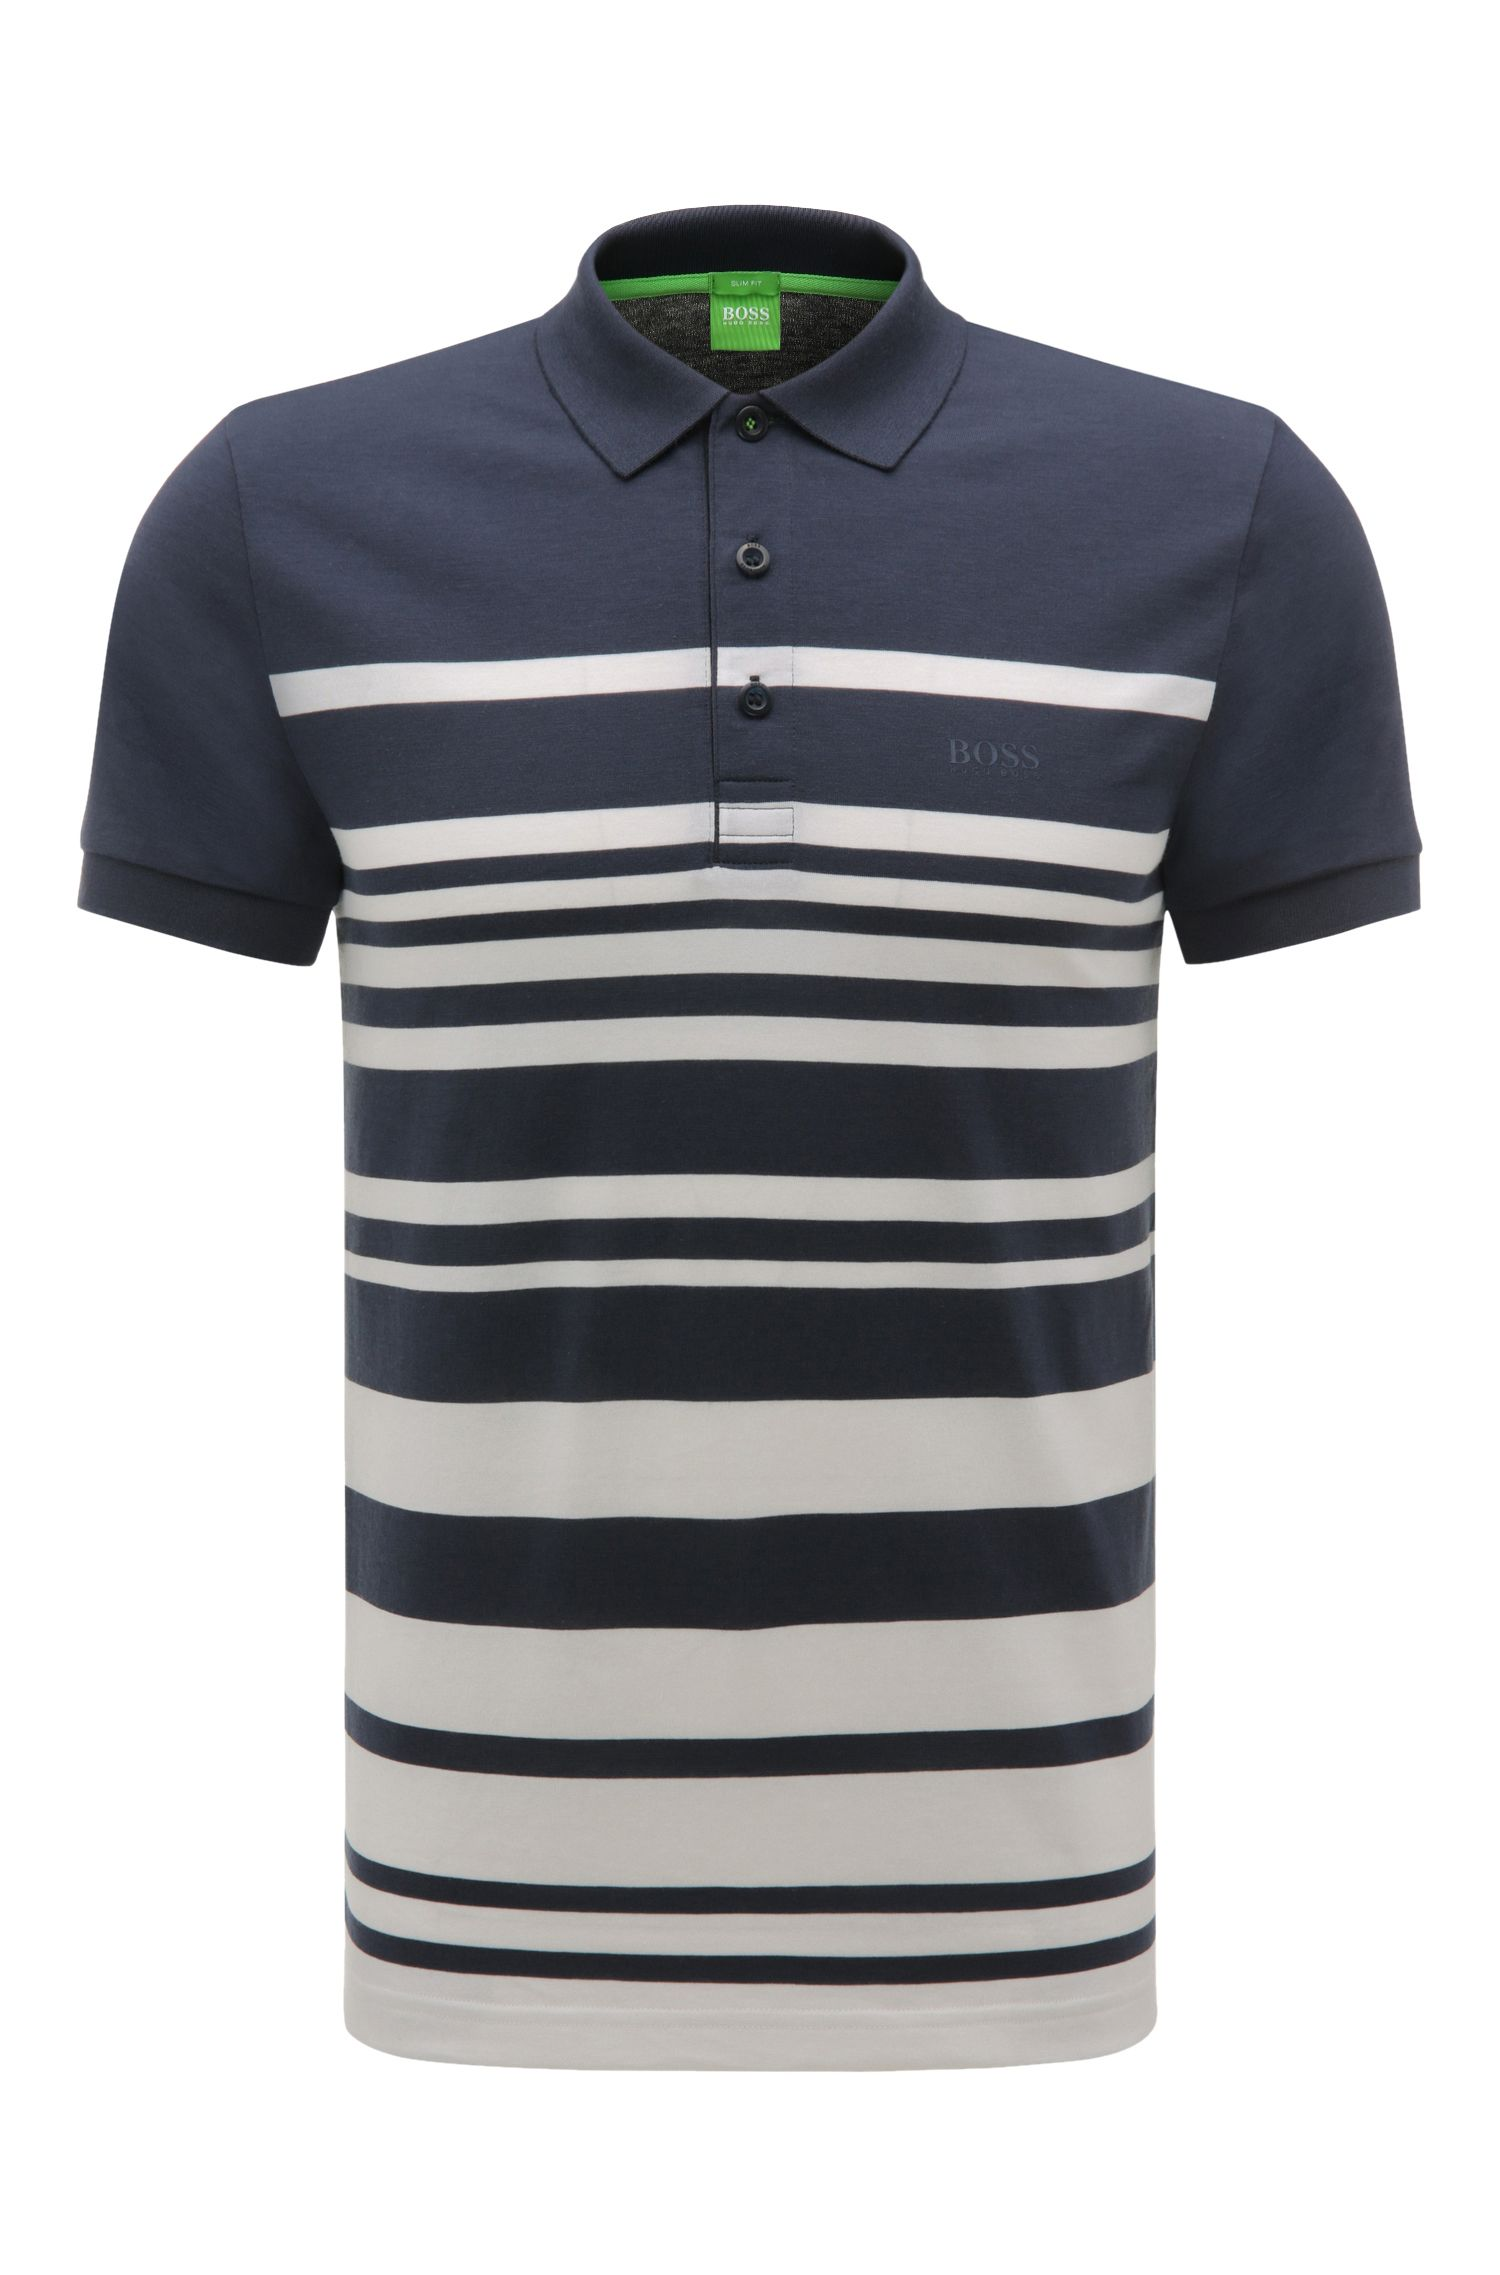 'Paule' | Slim Fit, Cotton Blend Striped Polo